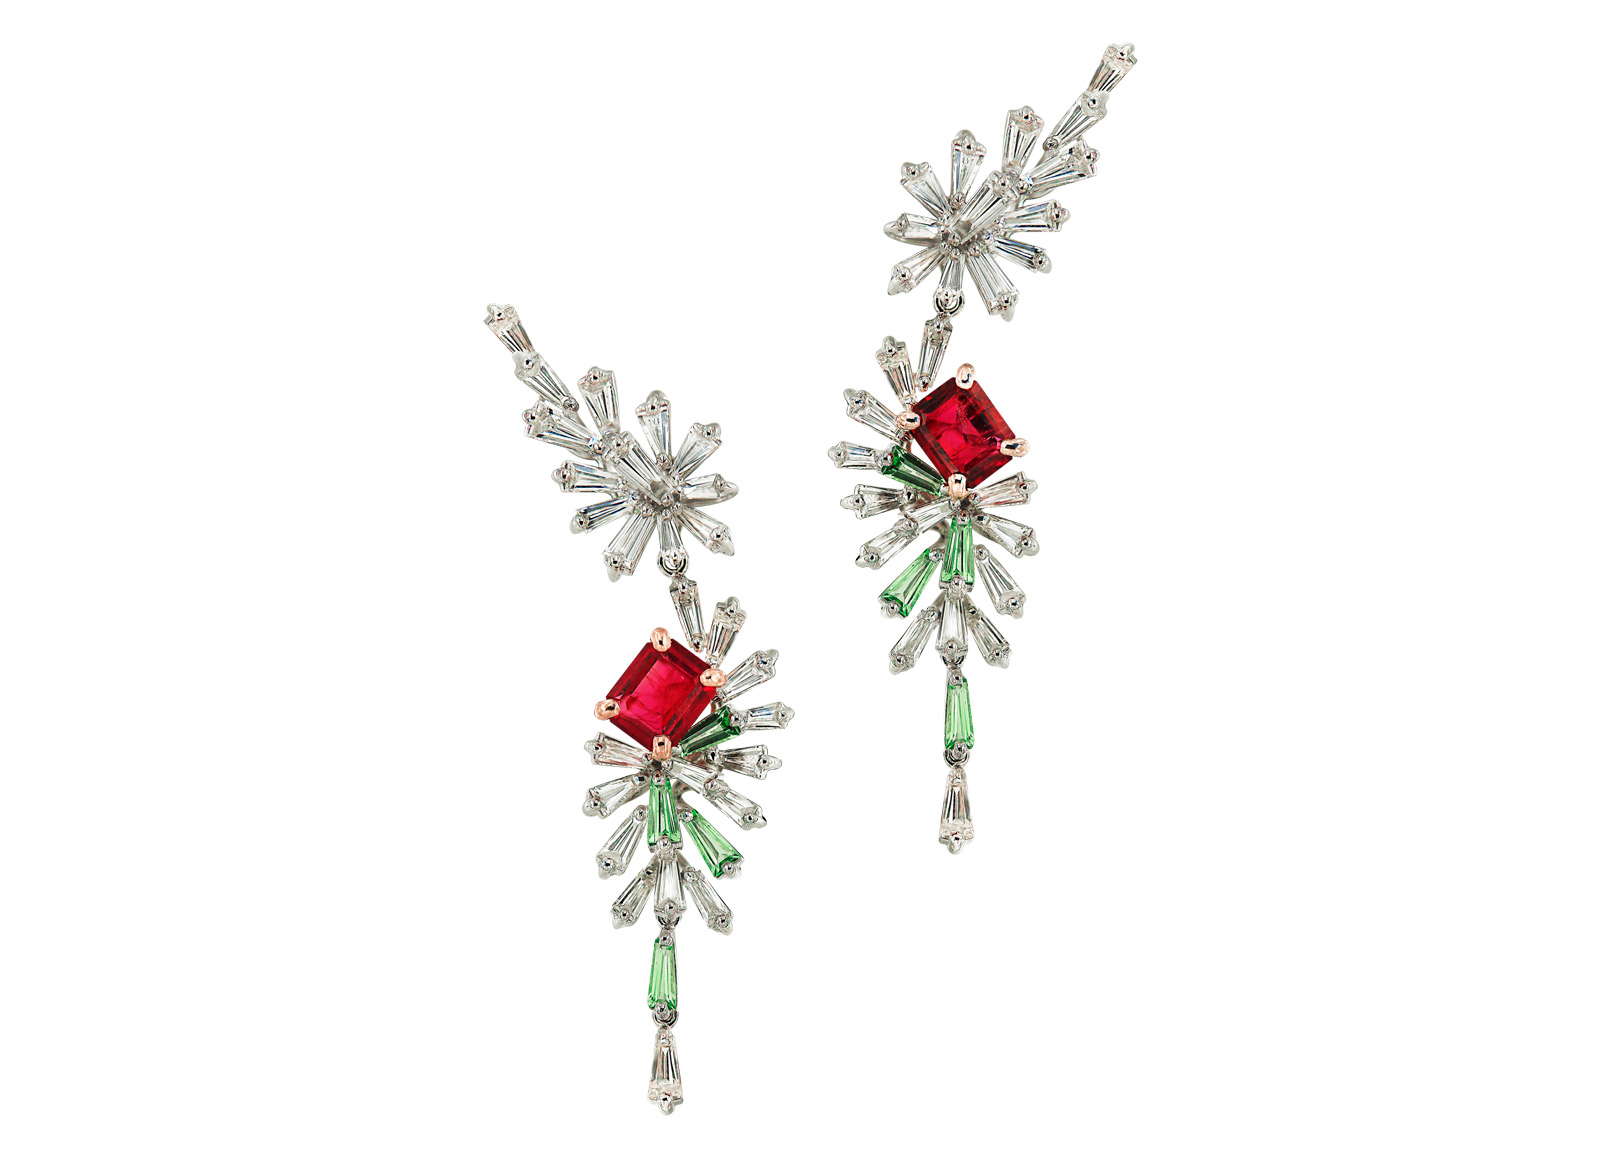 Caratell Bixbite / Red beryl, Green Garnet and Diamond drop earrings from 'Firework' collection